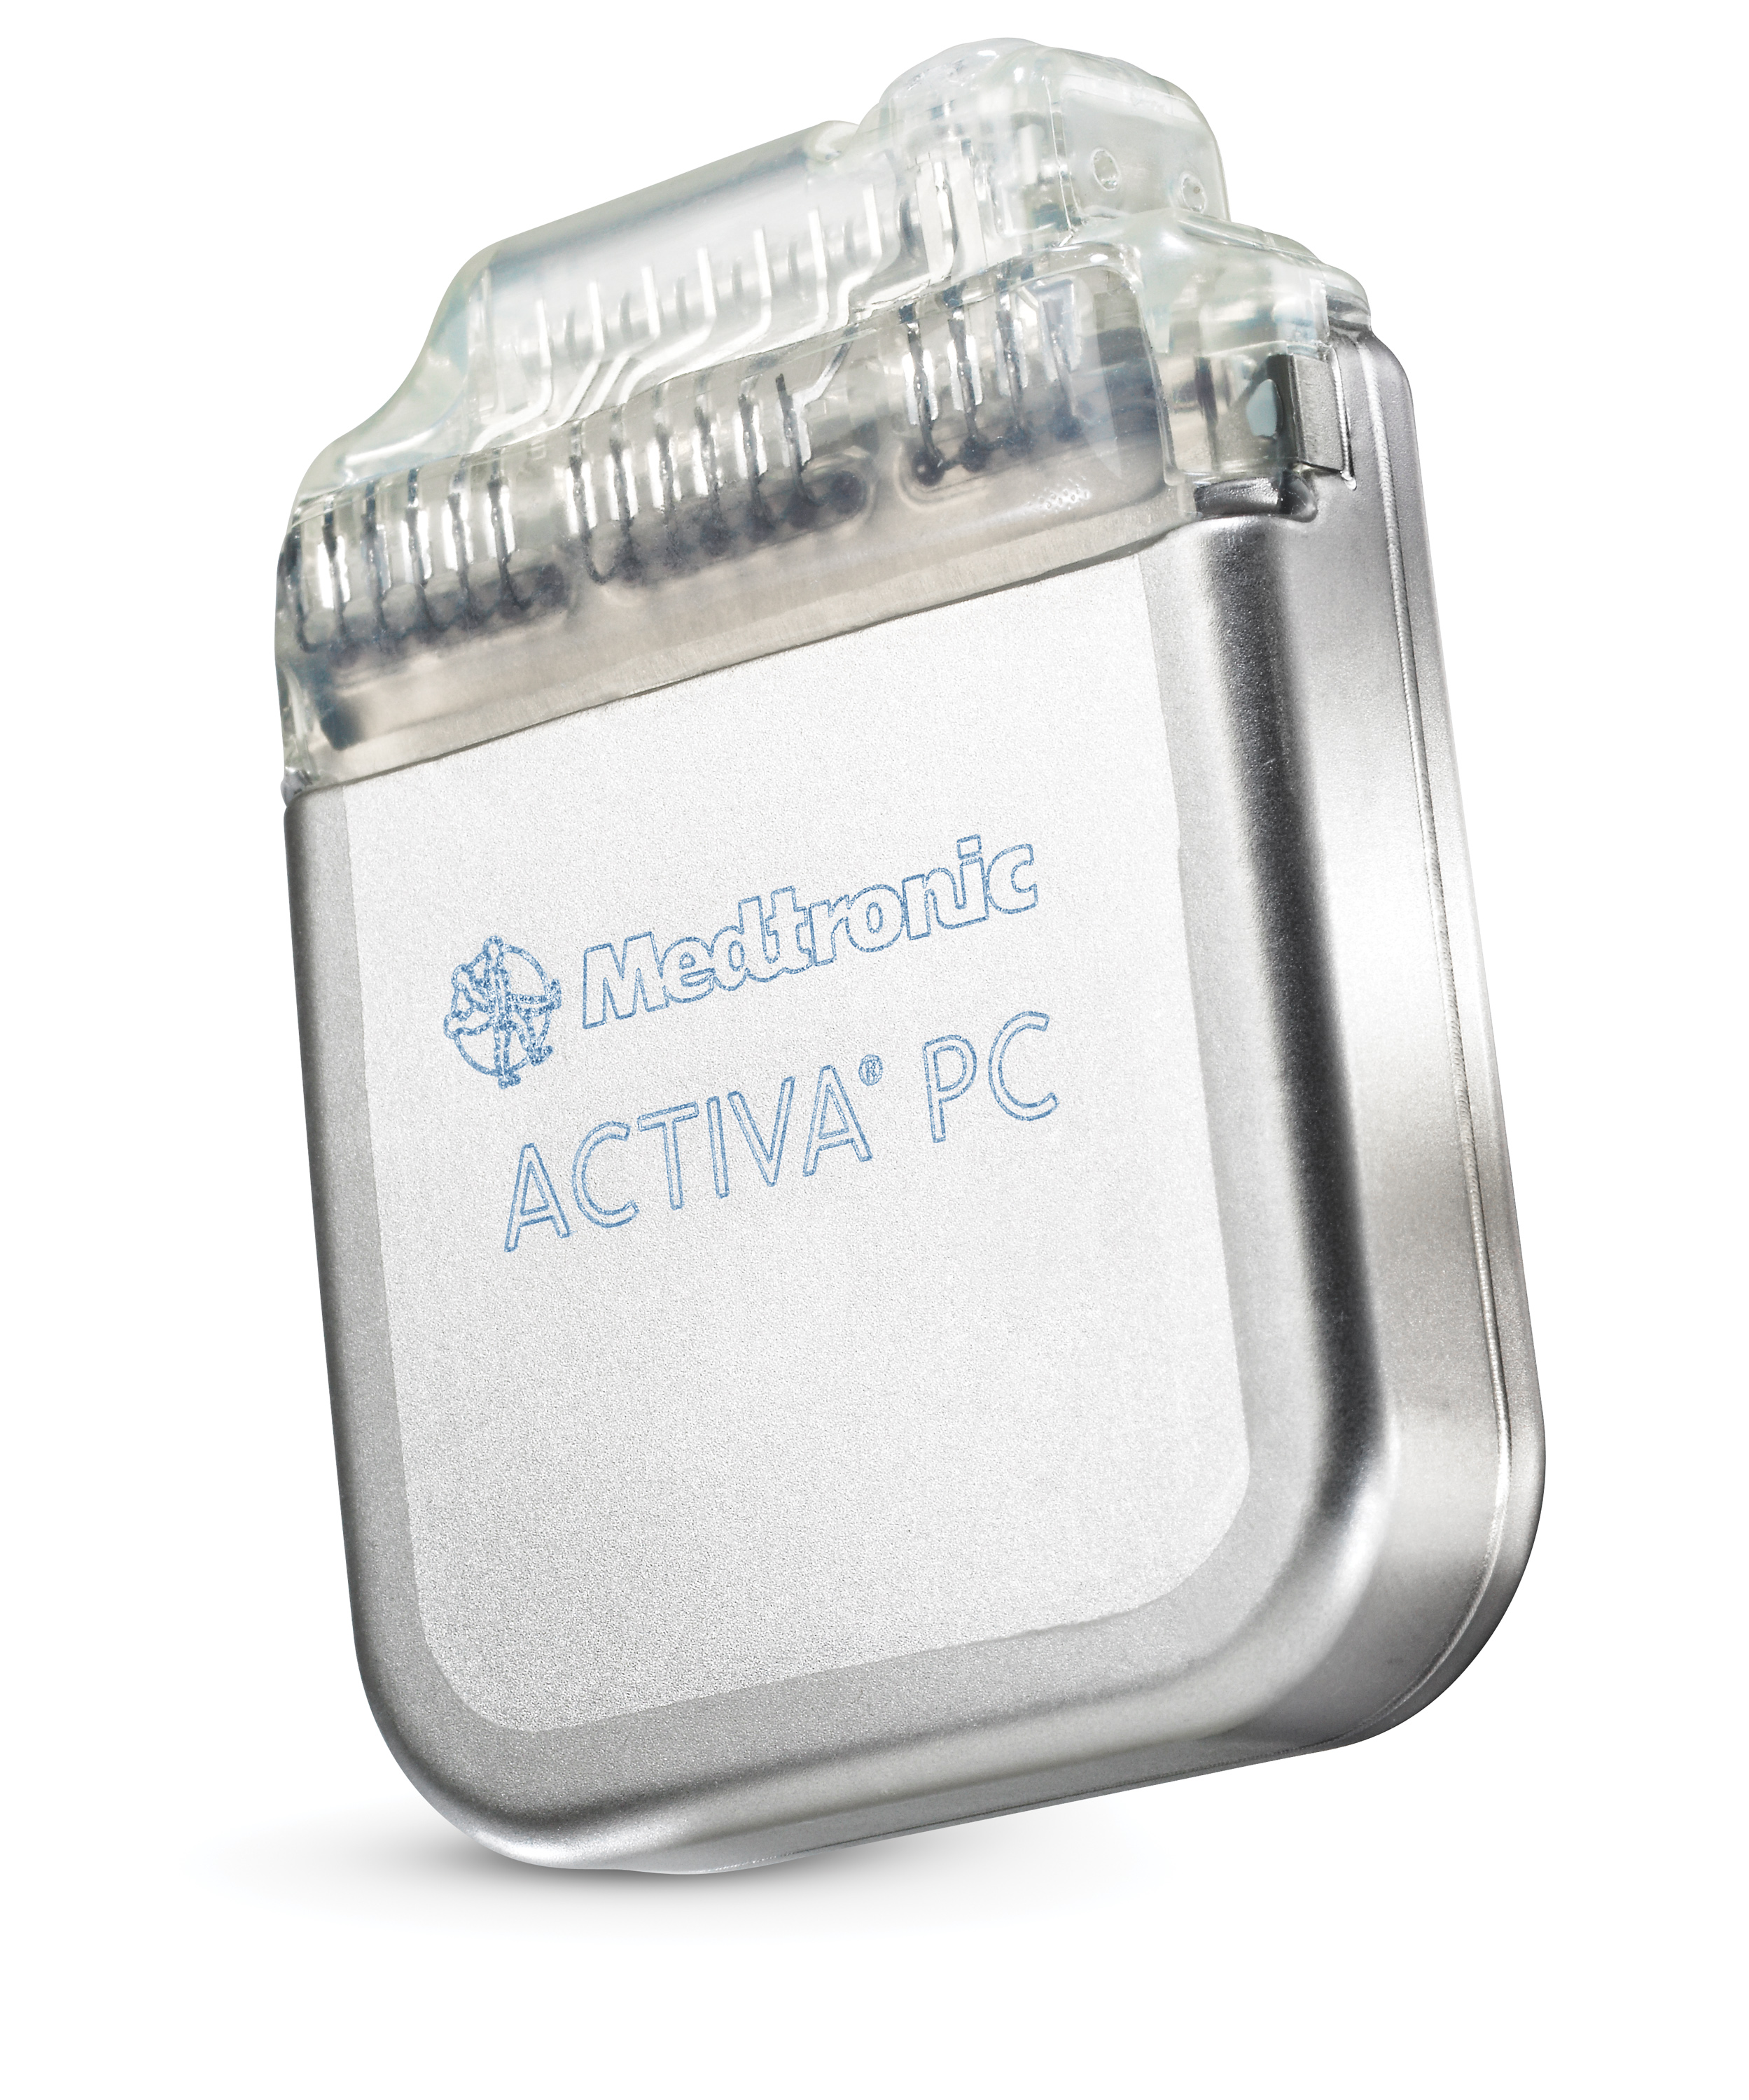 Medtronic Activa(TM) PC neurostimulator